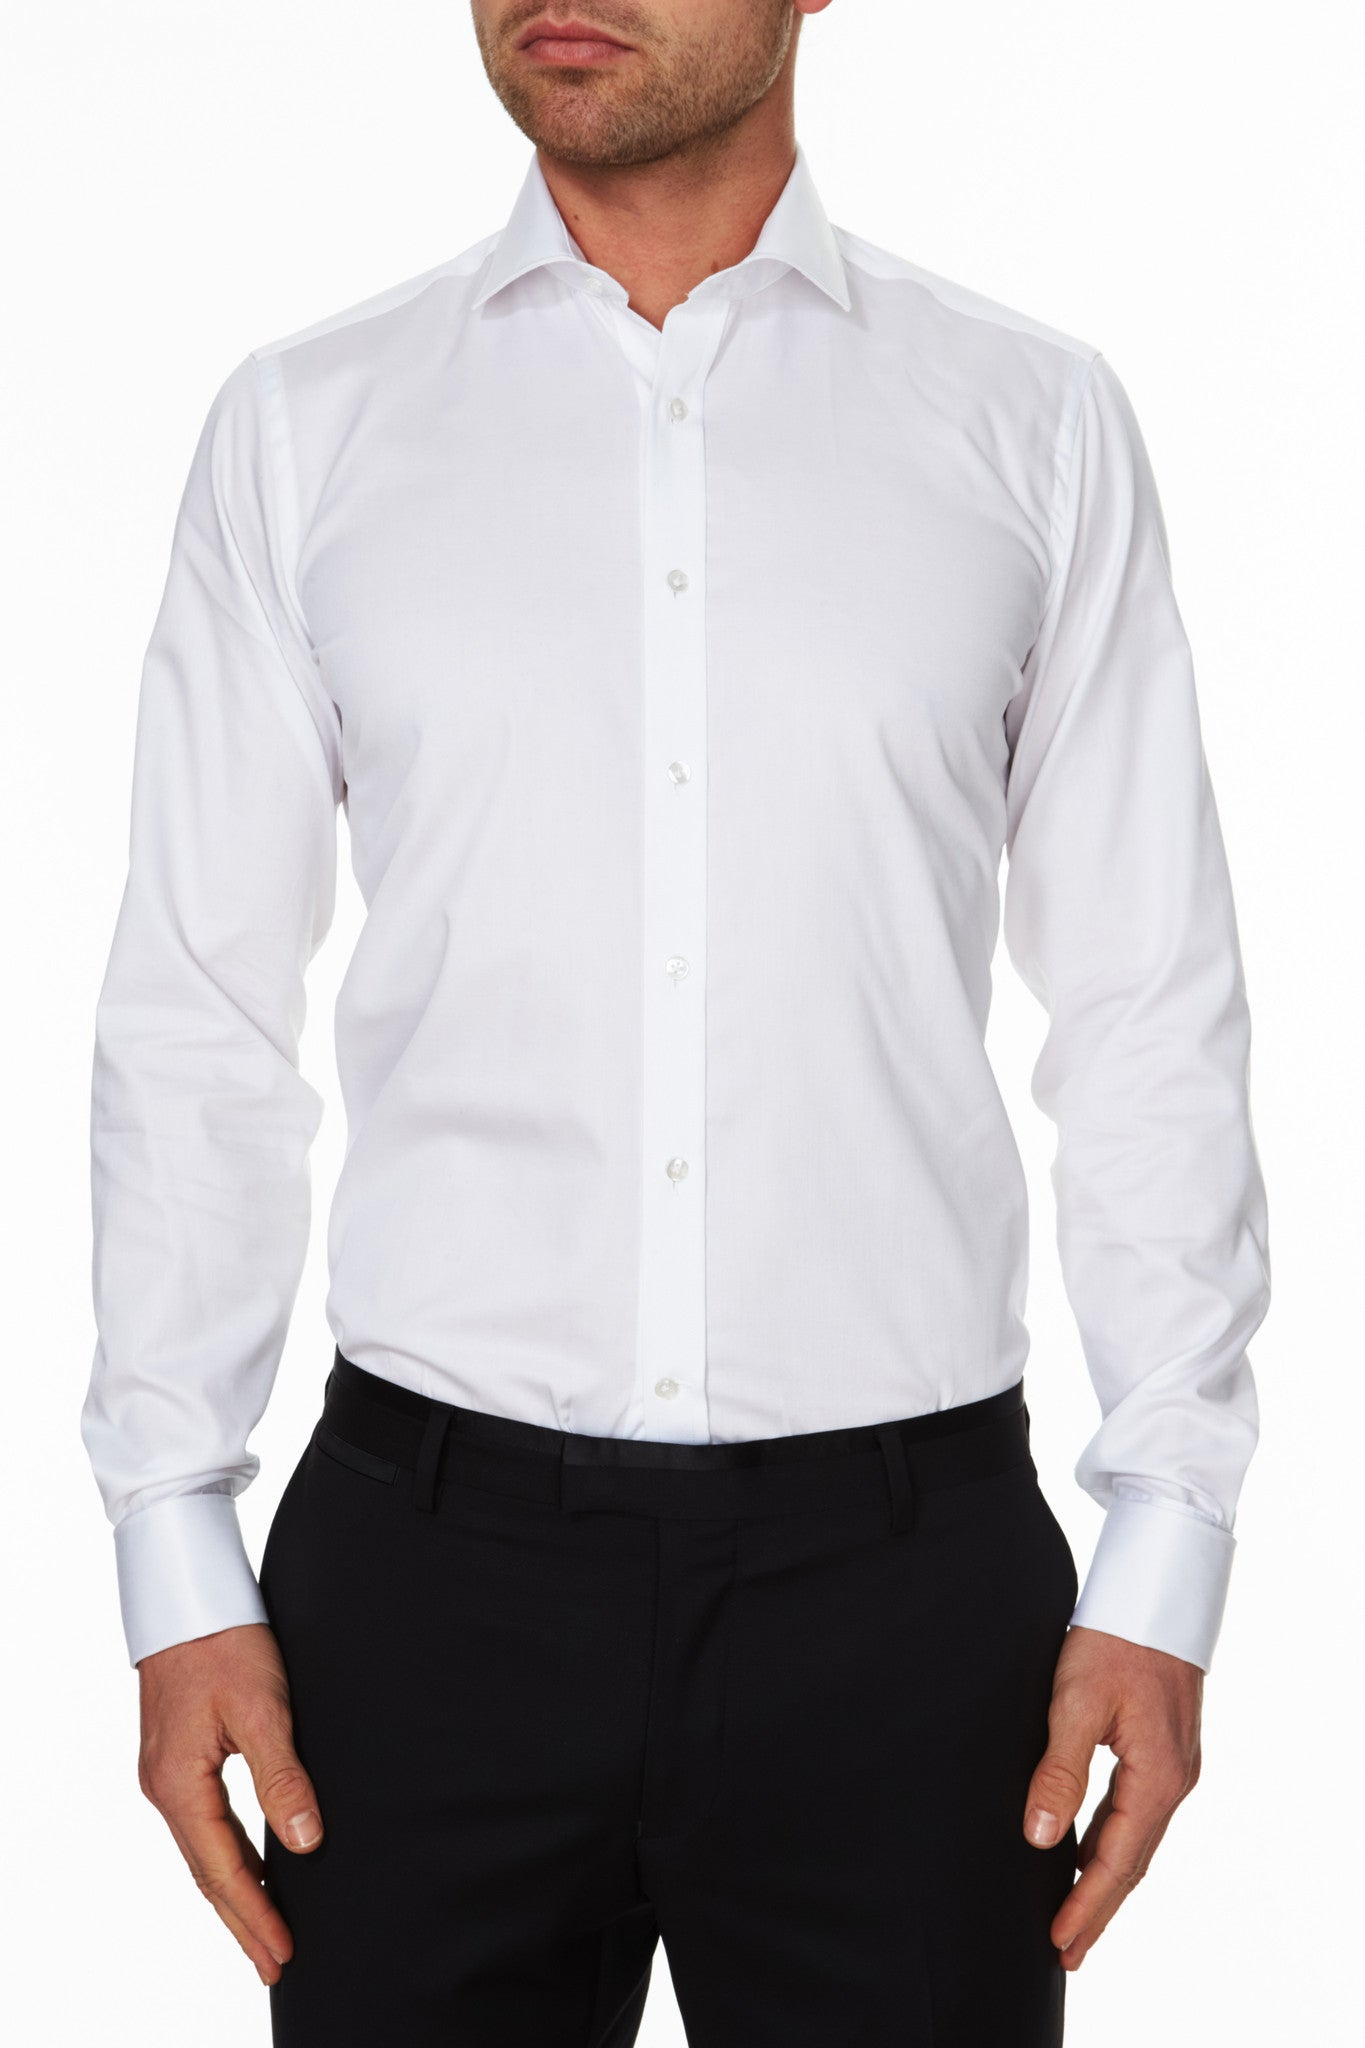 Leader Business Shirt White Front